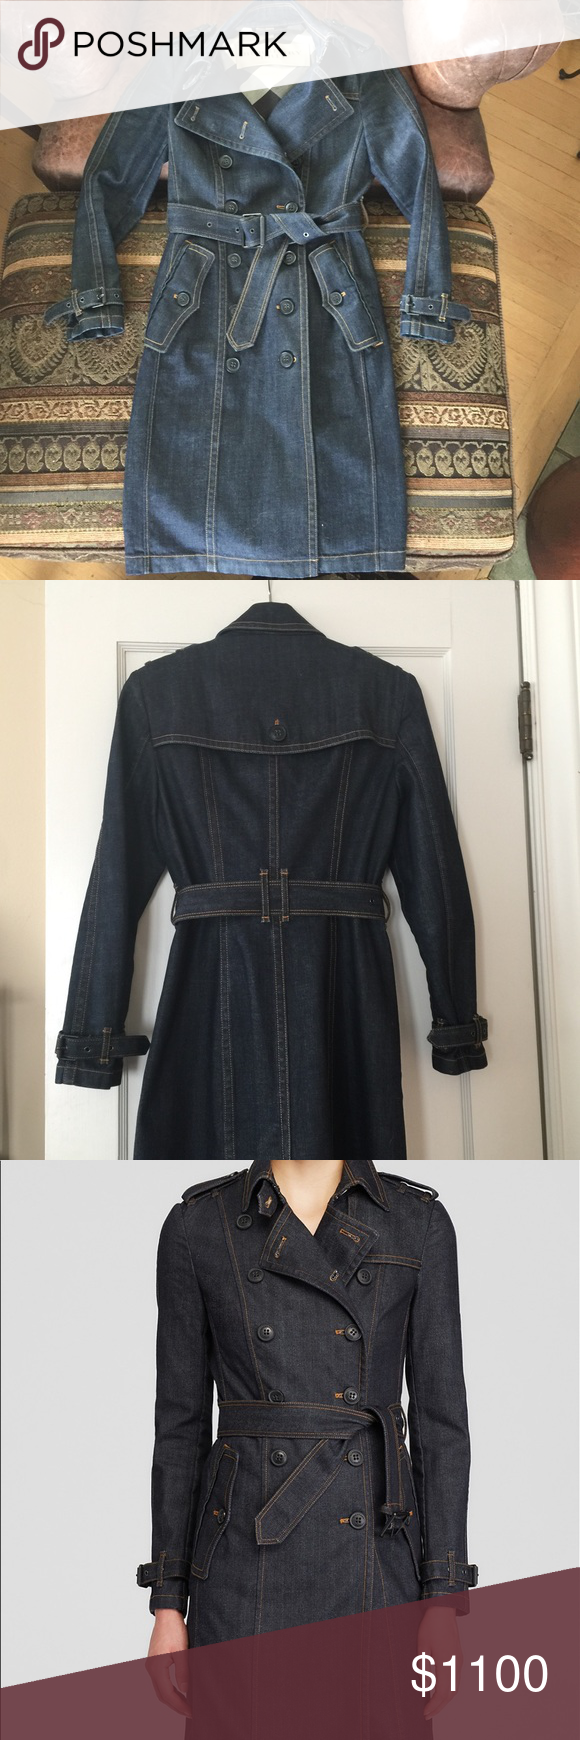 Burberry denim trench coat Only worn once.  Perfect condition.  Can be worn many different ways even as a stand alone dress.  Very smart looking and versatile. Burberry Jackets & Coats Trench Coats